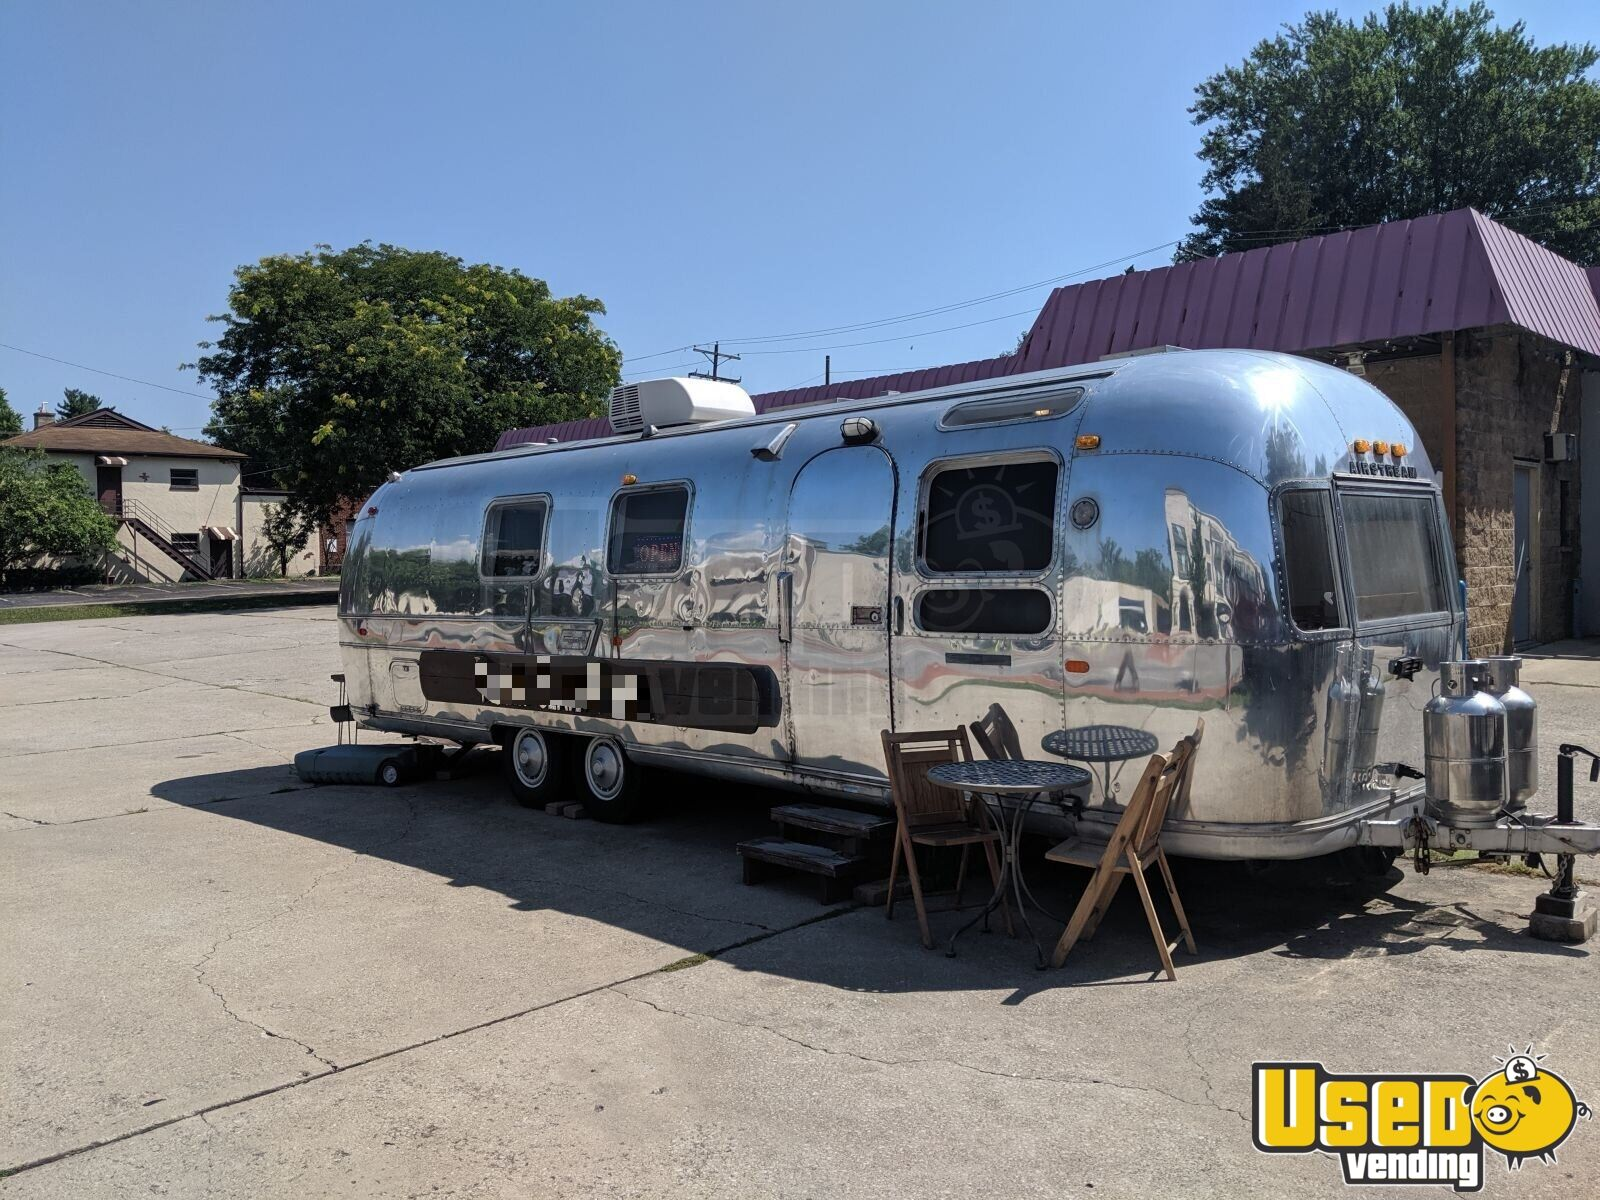 Details about Vintage Airstream Mobile Coffee Shop Concession Trailer for  Sale in Ohio!!!